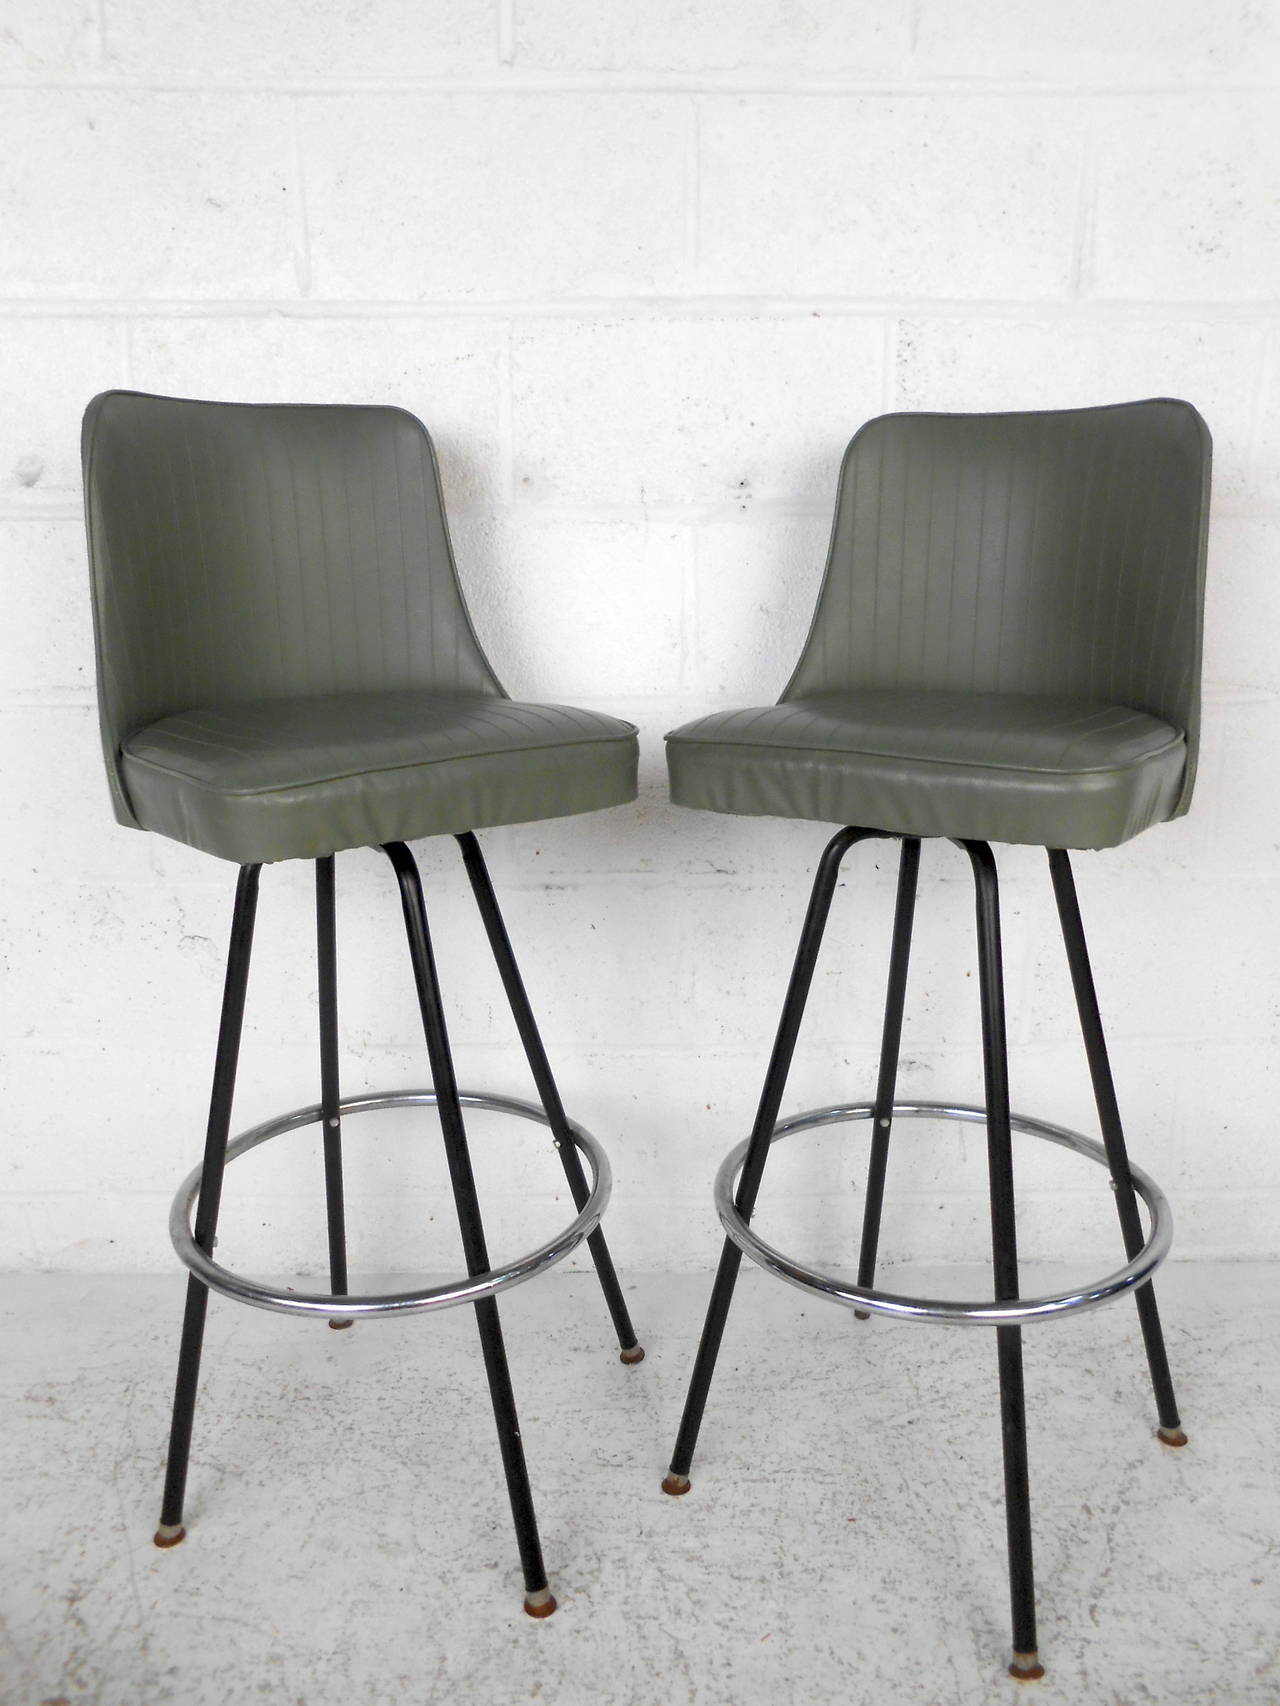 midcentury modern bar stools by atlas at stdibs - midcentury modern bar stools by atlas